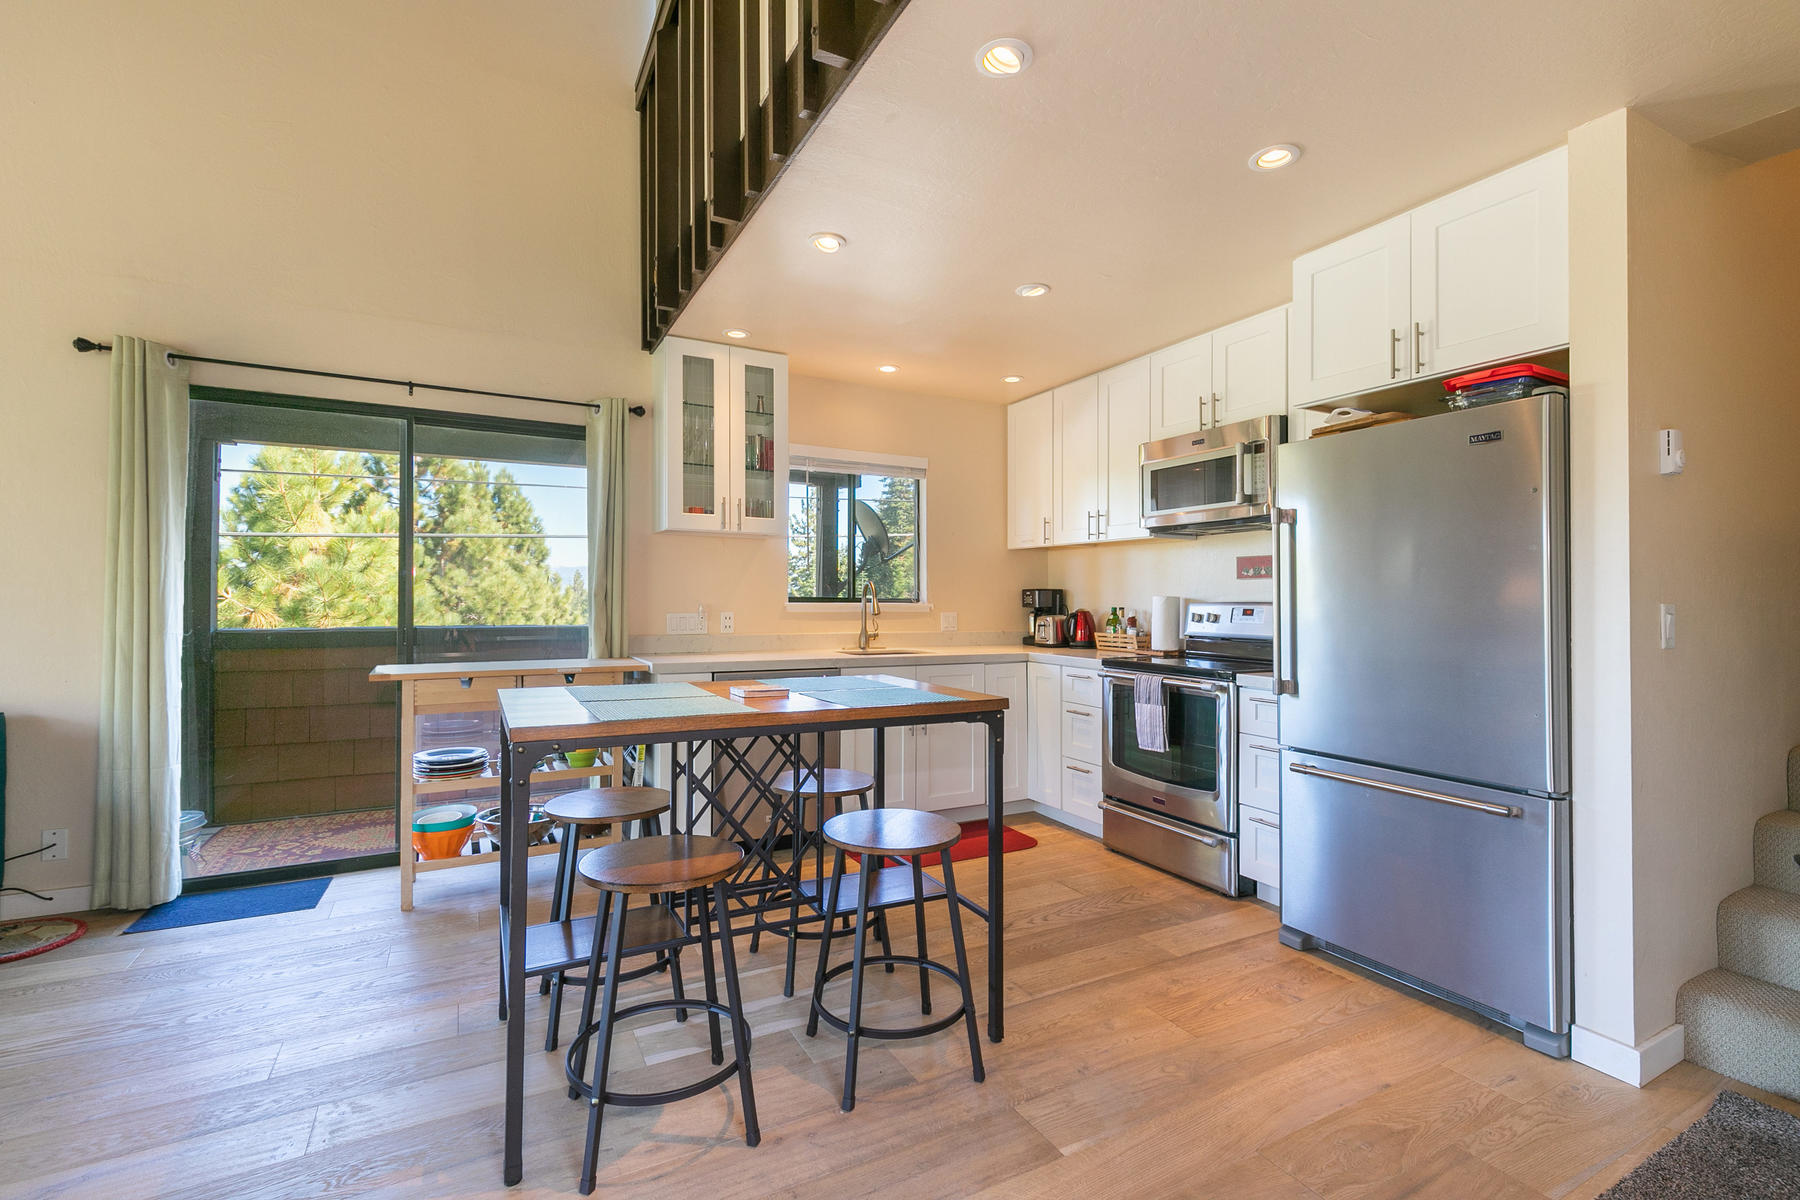 Additional photo for property listing at 11633 Snowpeak Way #502, Truckee, CA 11633 Snowpeak Way # 502 Truckee, California 96161 United States